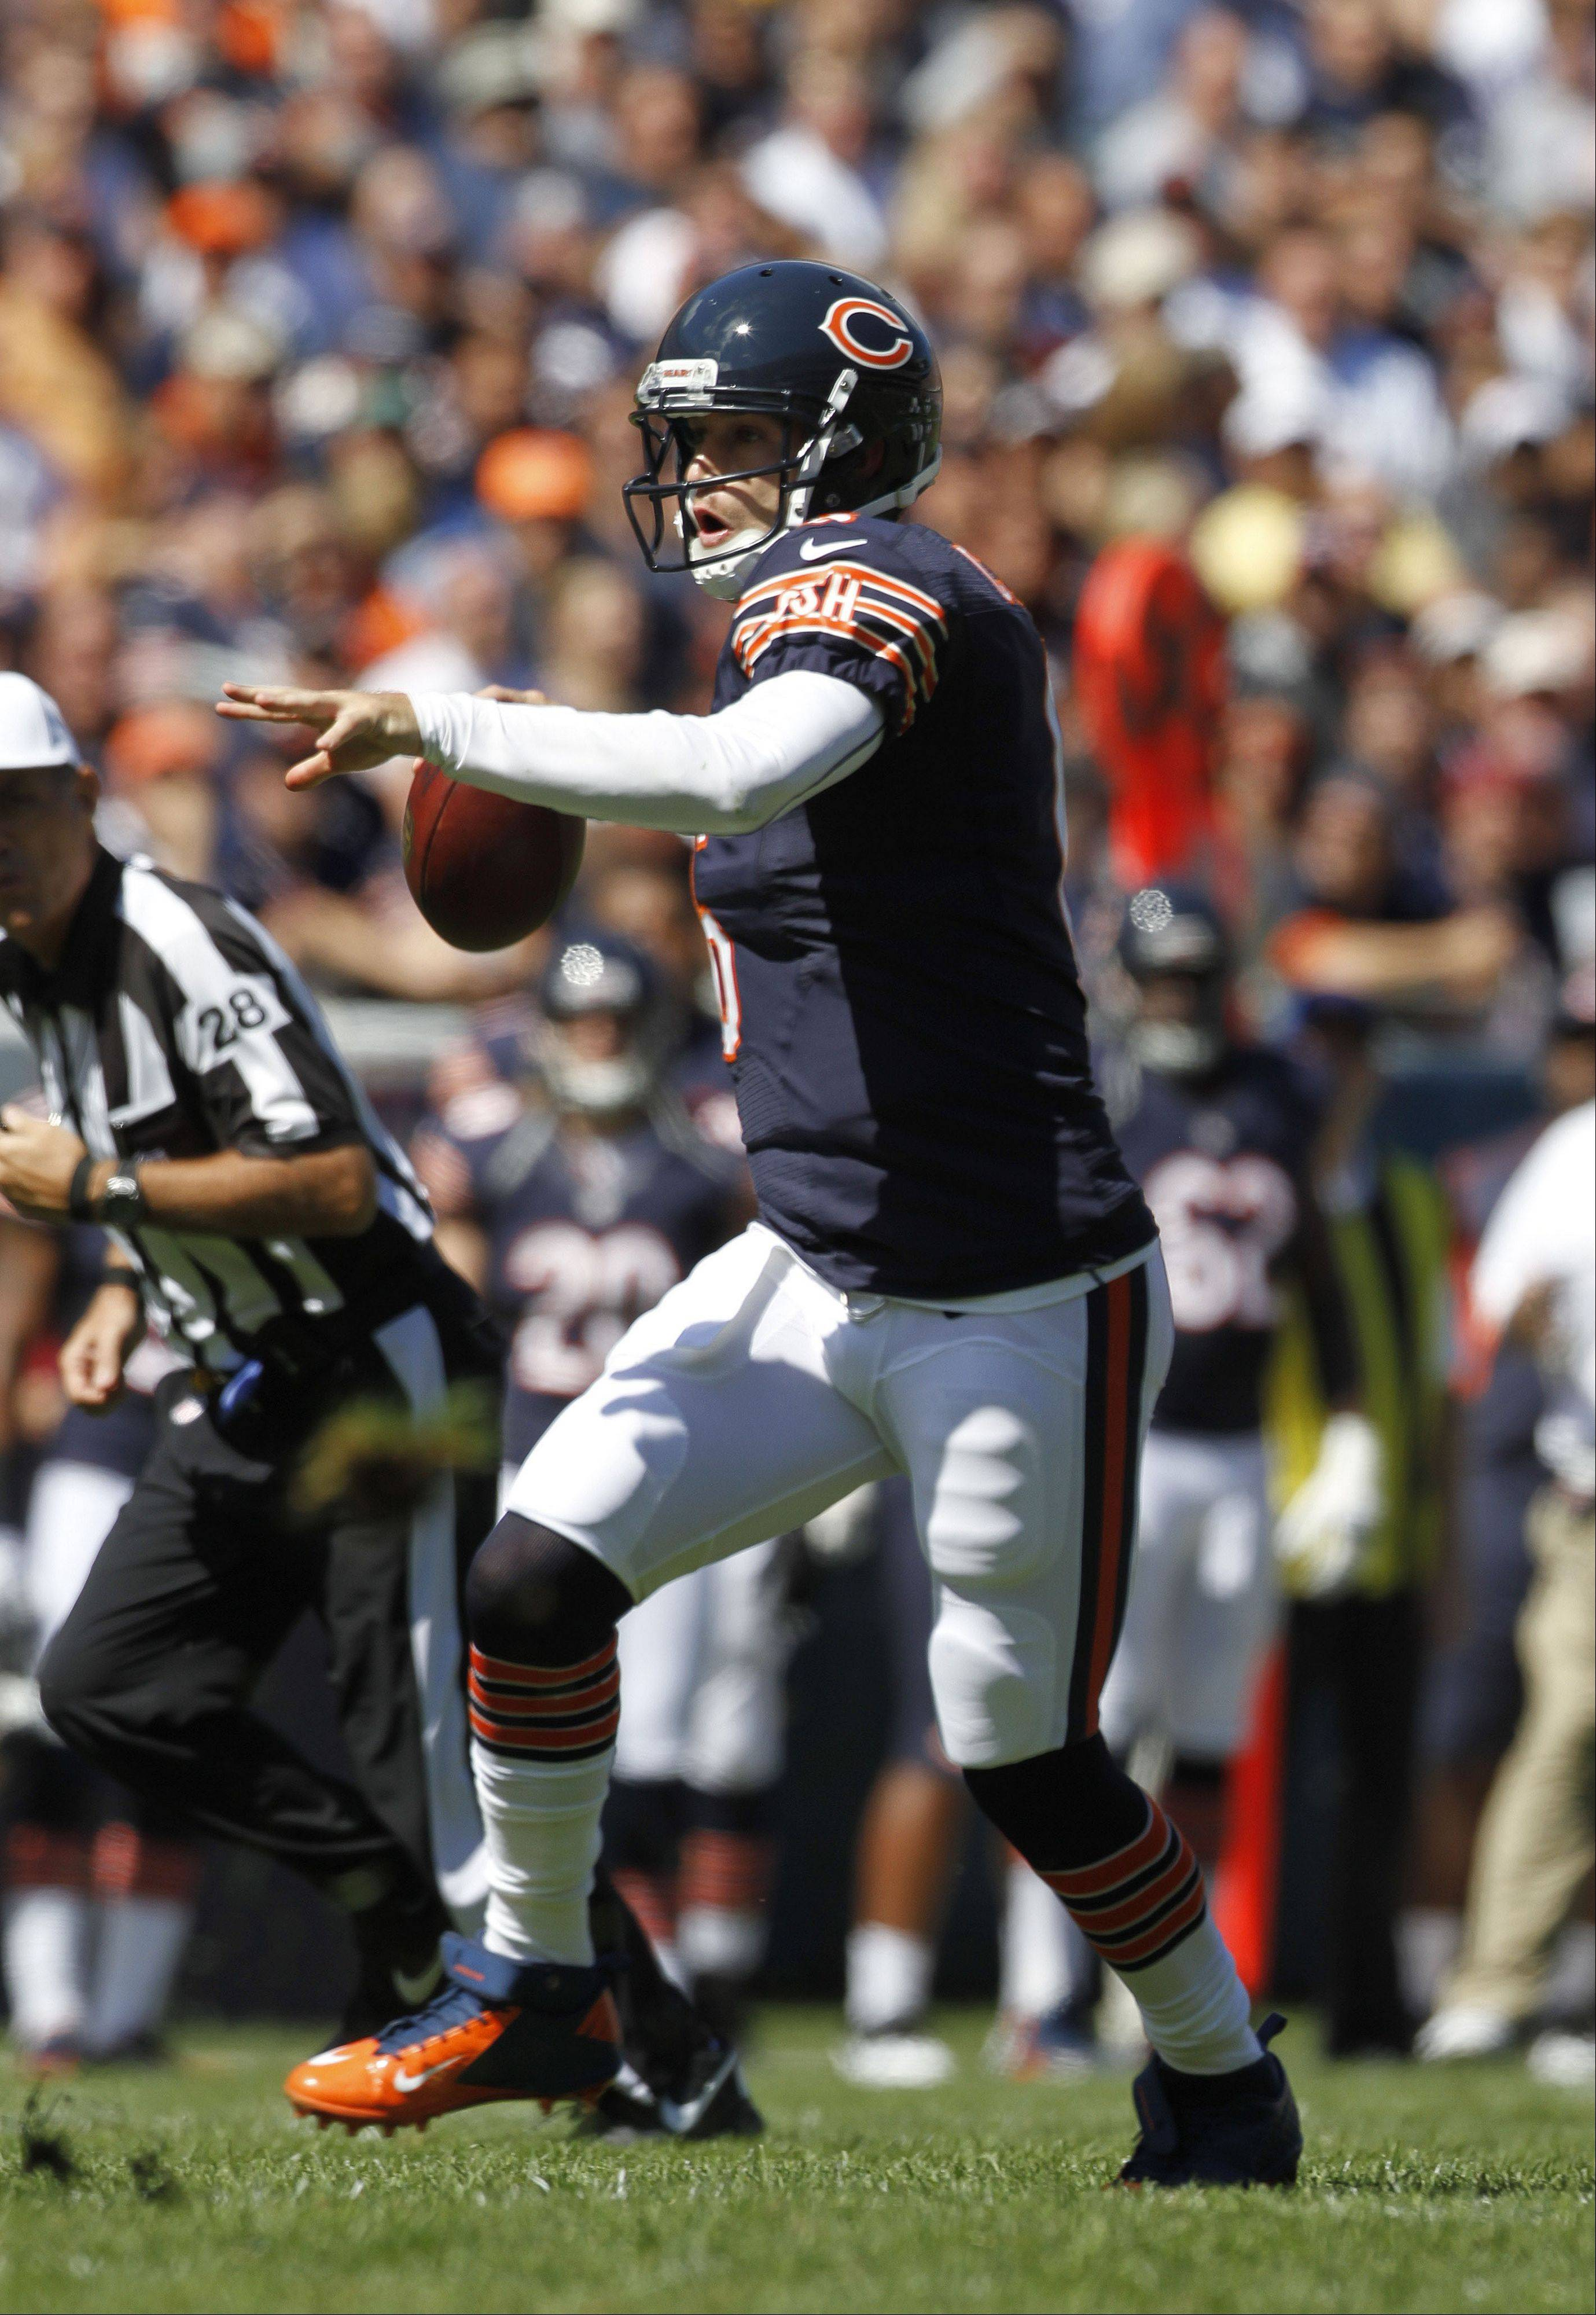 After a slow start, Bears quarterback Jay Cutler finished with 333 yards passing in Sunday's victory over the Colts.